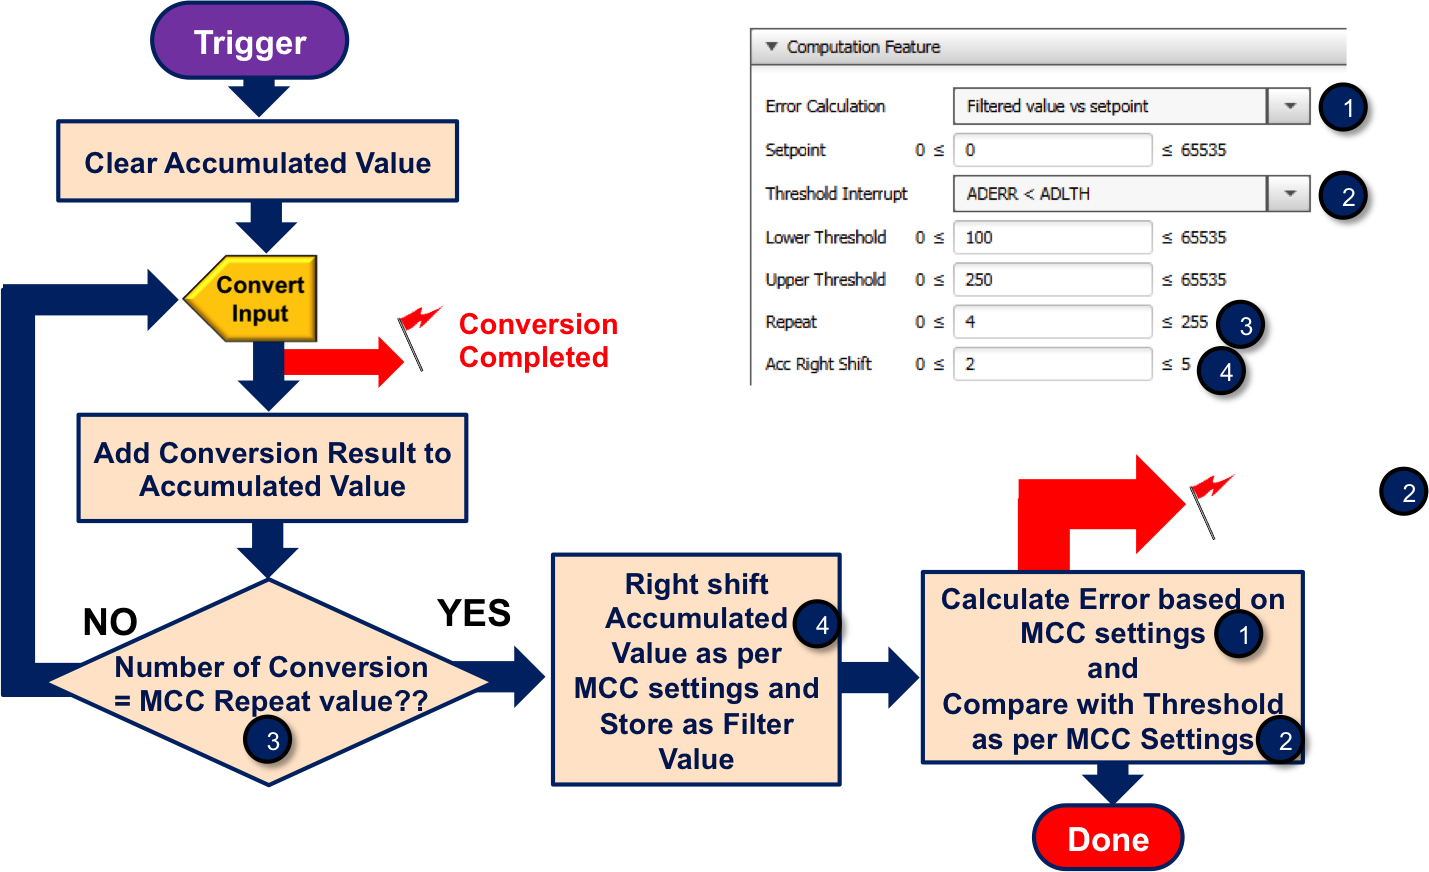 Analog To Digital Converter With Computation Developer Help Analogue Conversion Tutorial Circuits Sequential Logic This Means That In A Single All The Data Samples Are Accumulated Up Set Adrpt And When Adcnt Matches Adprt Value